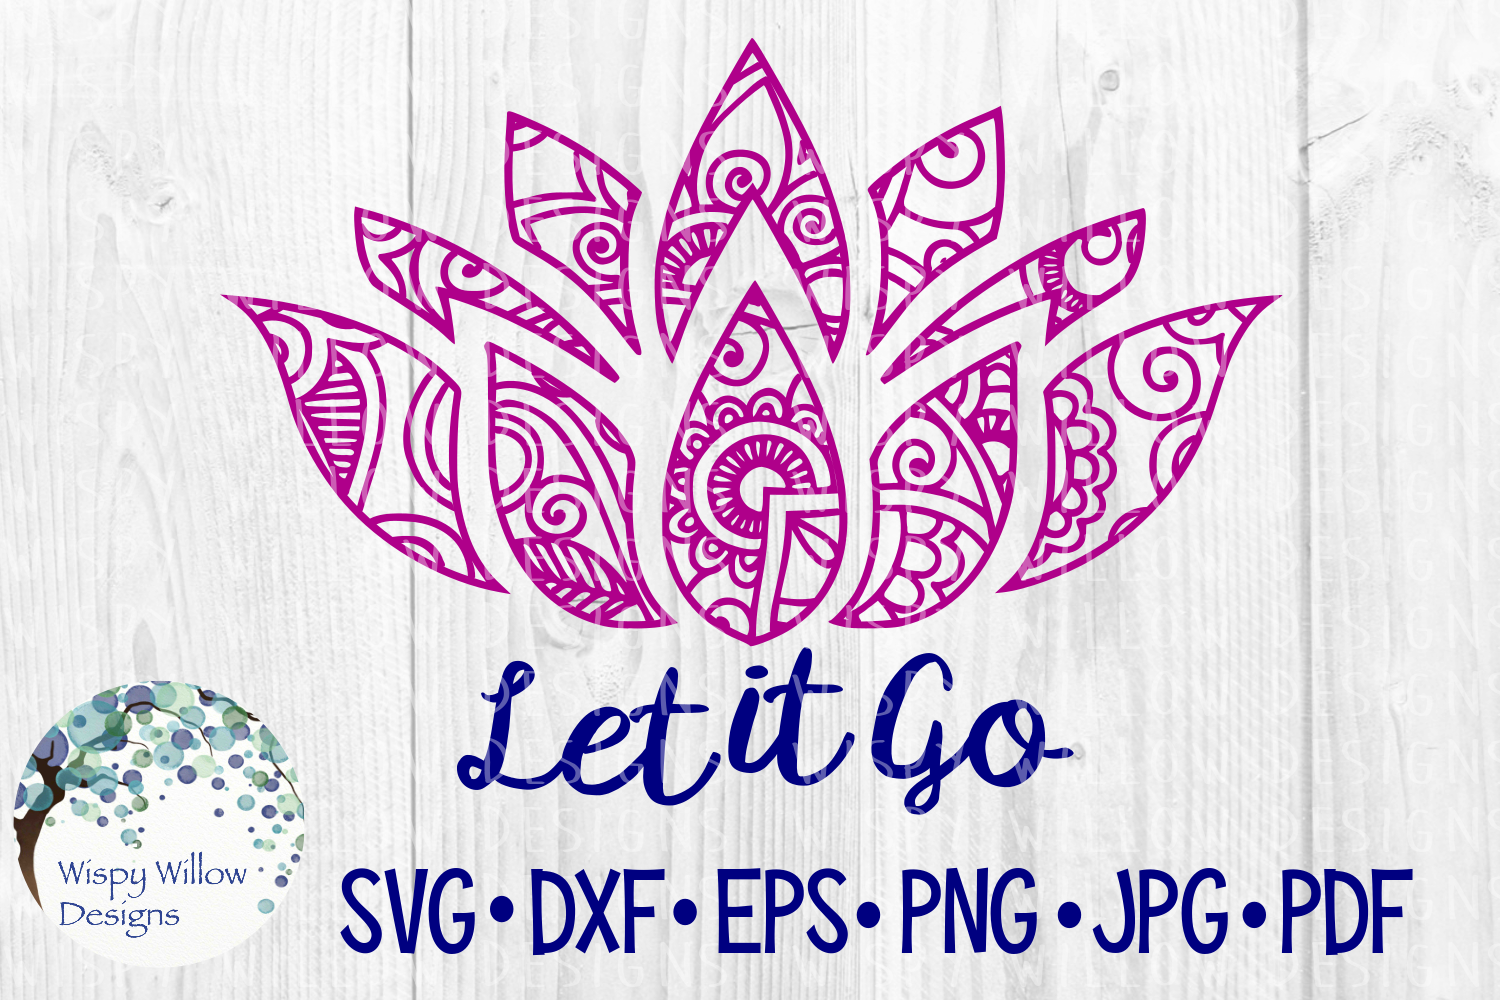 Let it go lotus flower peace graphic by wispywillowdesigns let it go lotus flower peace graphic by wispywillowdesigns creative fabrica izmirmasajfo